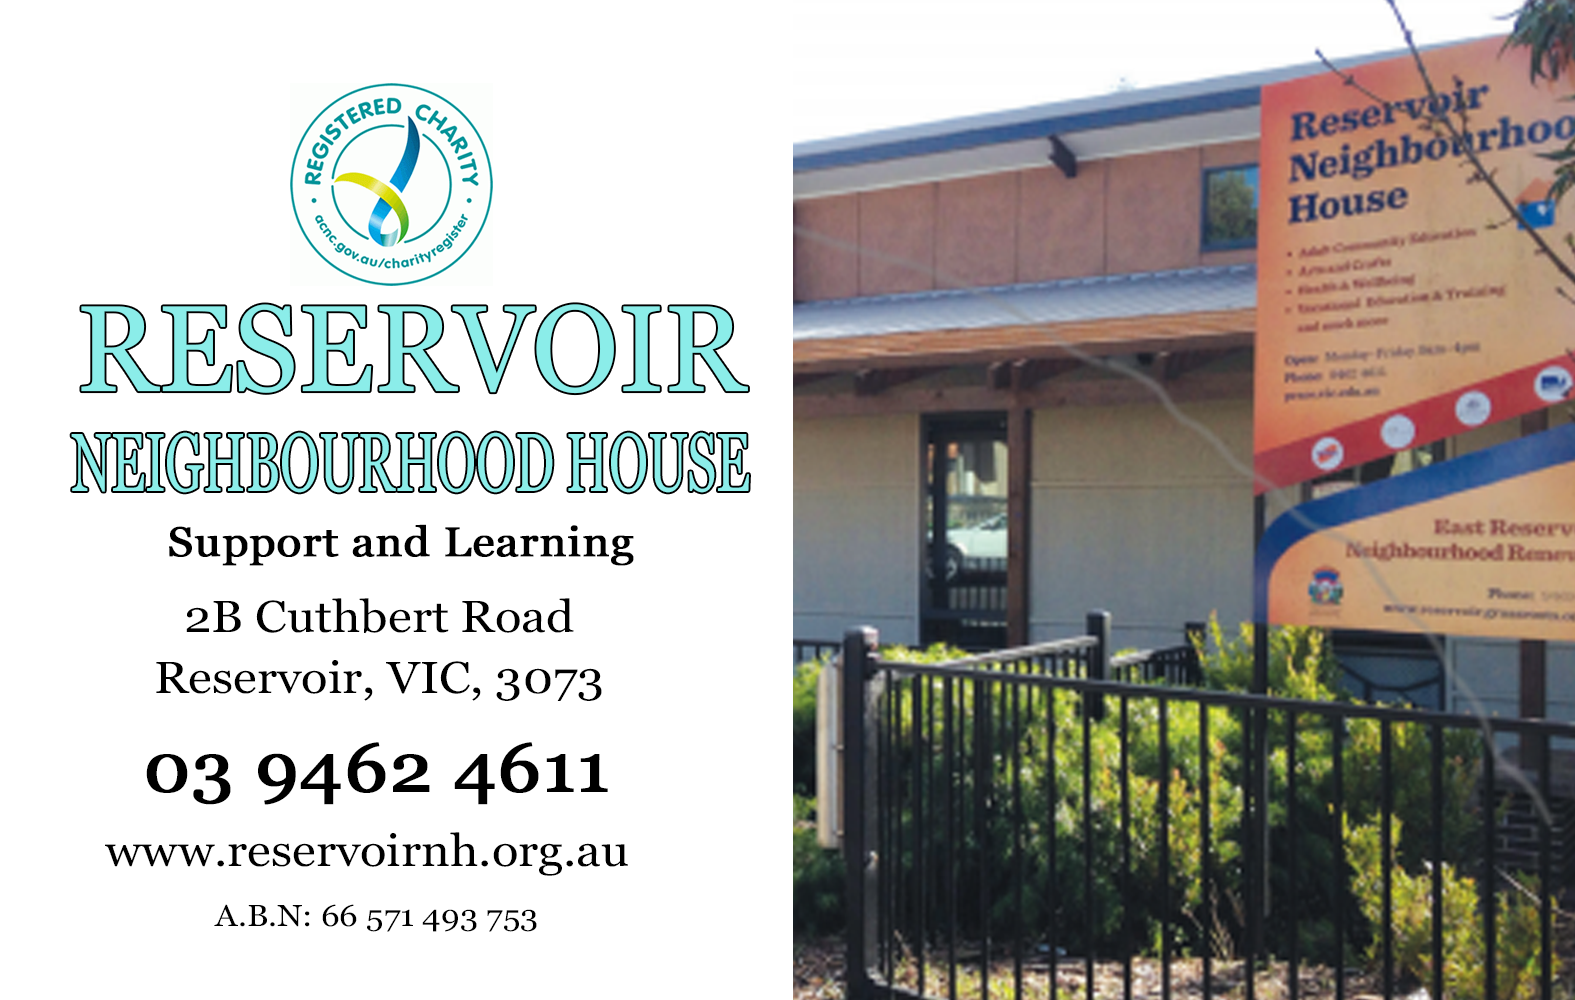 reservoir neighbourhood house community center for everyone who needs help and support angie davidson sponsor reservoir community